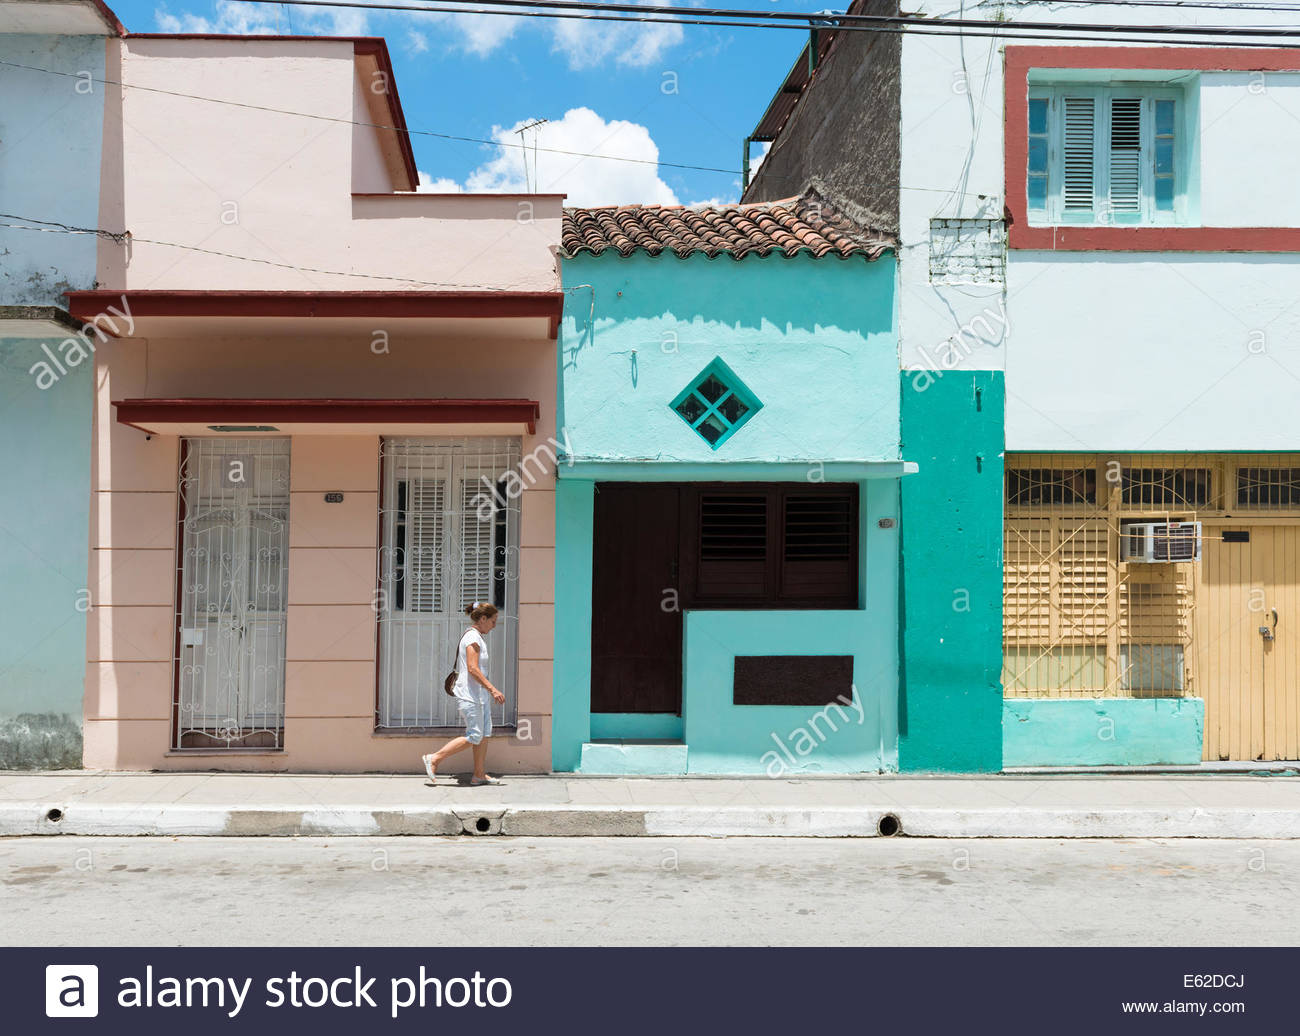 Despite the scorching heat in Cuba many do not protect themselves from the ultraviolet rays. - Stock Image